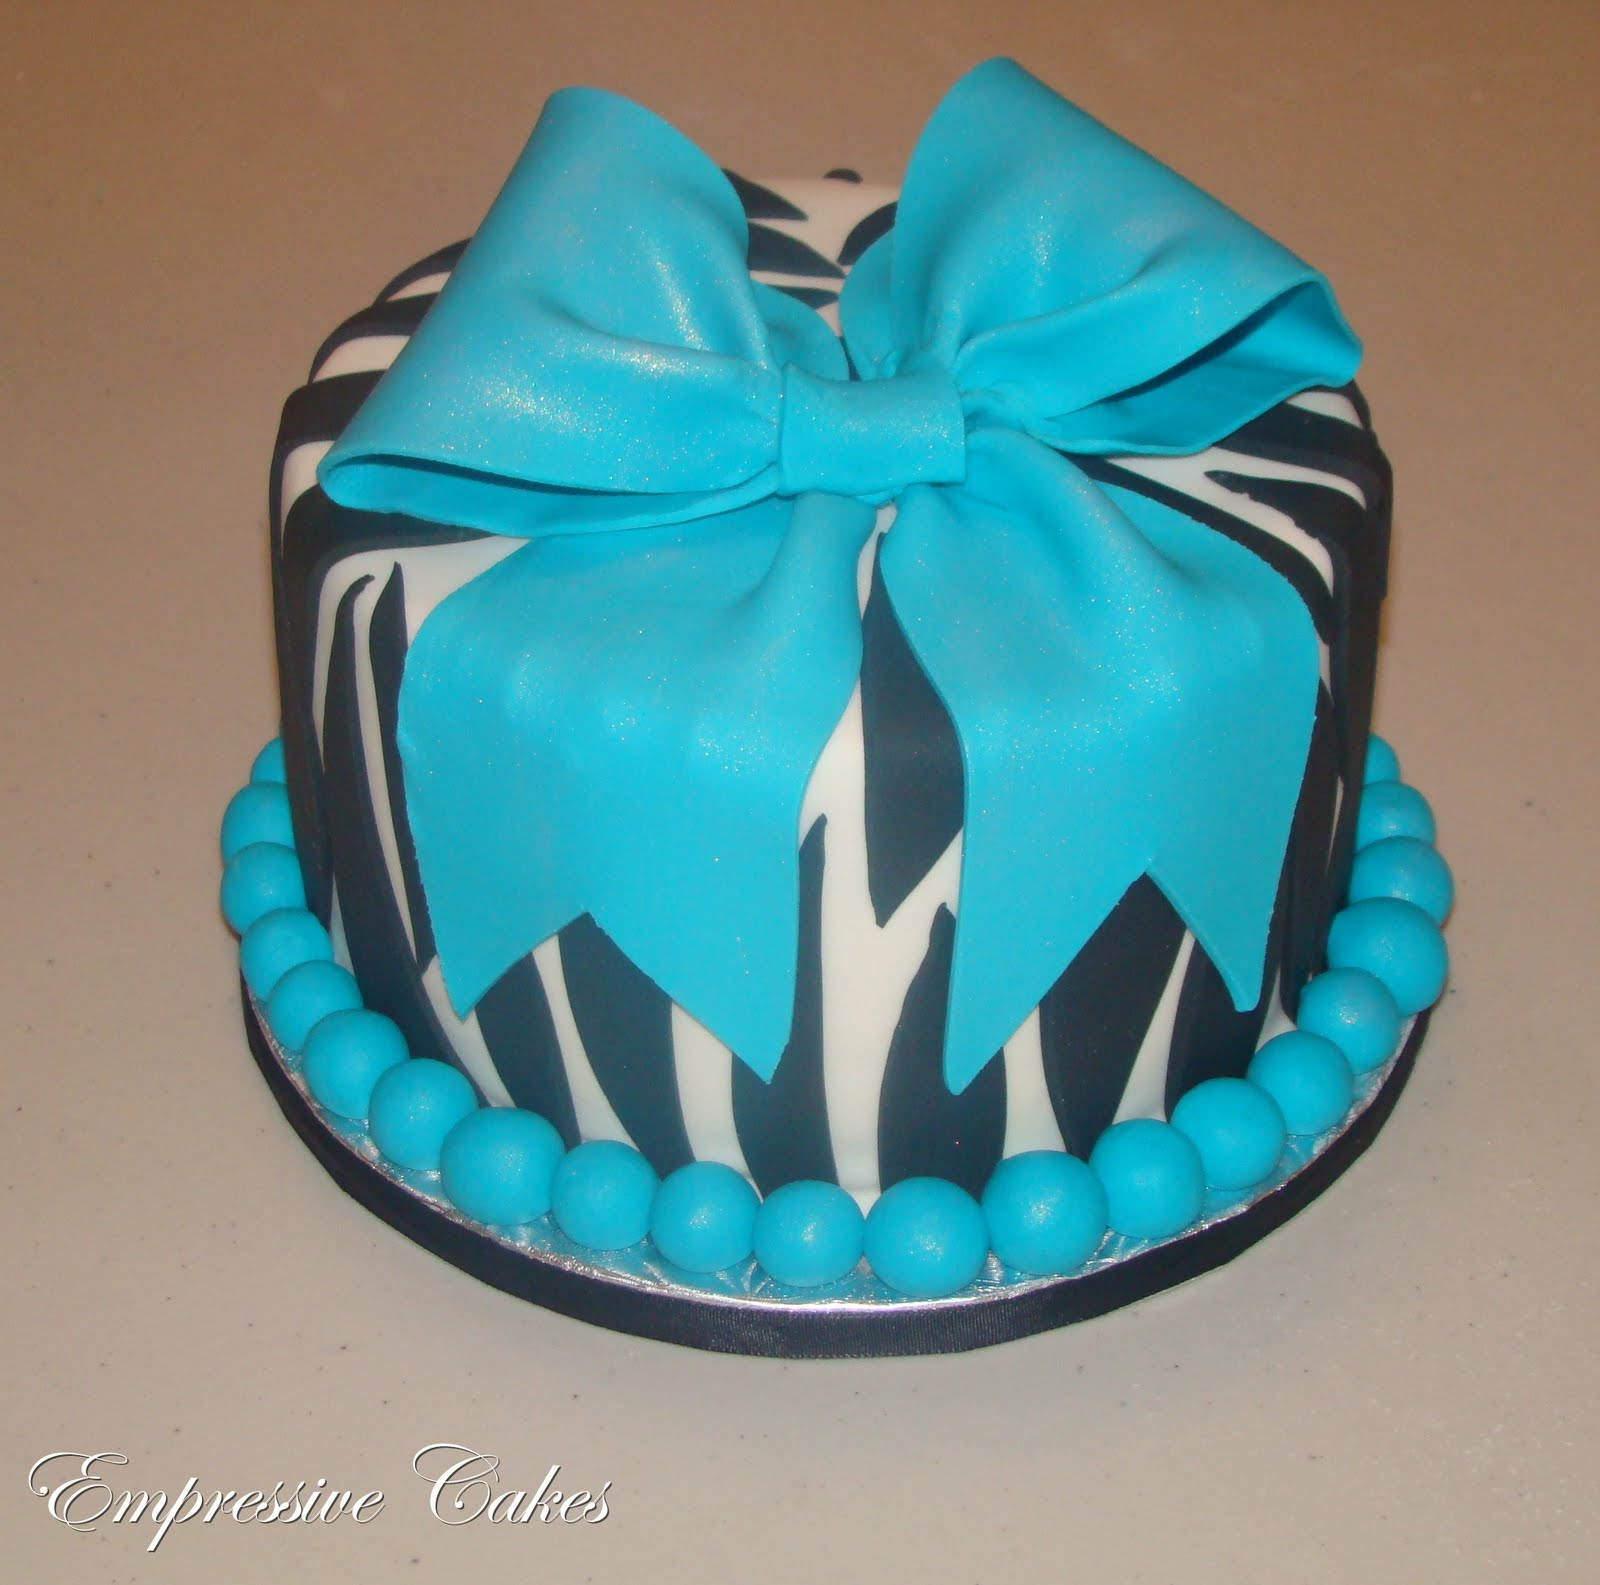 11 Photos of Baby Blue Zebra Print Cakes